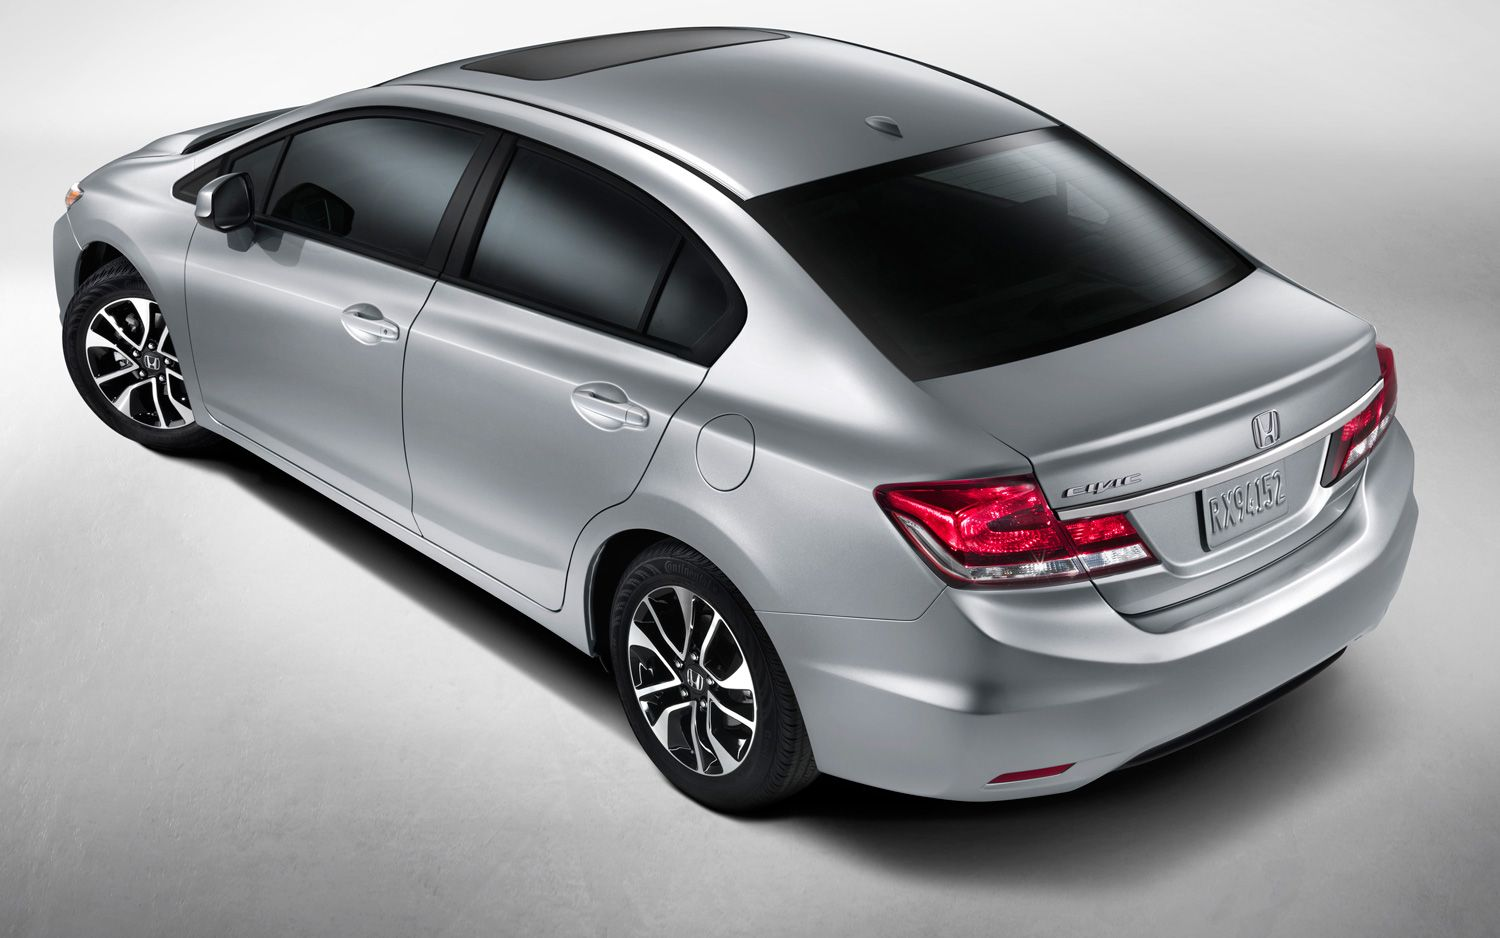 2013 Honda Civic EX L Navi Sedan Rear View1